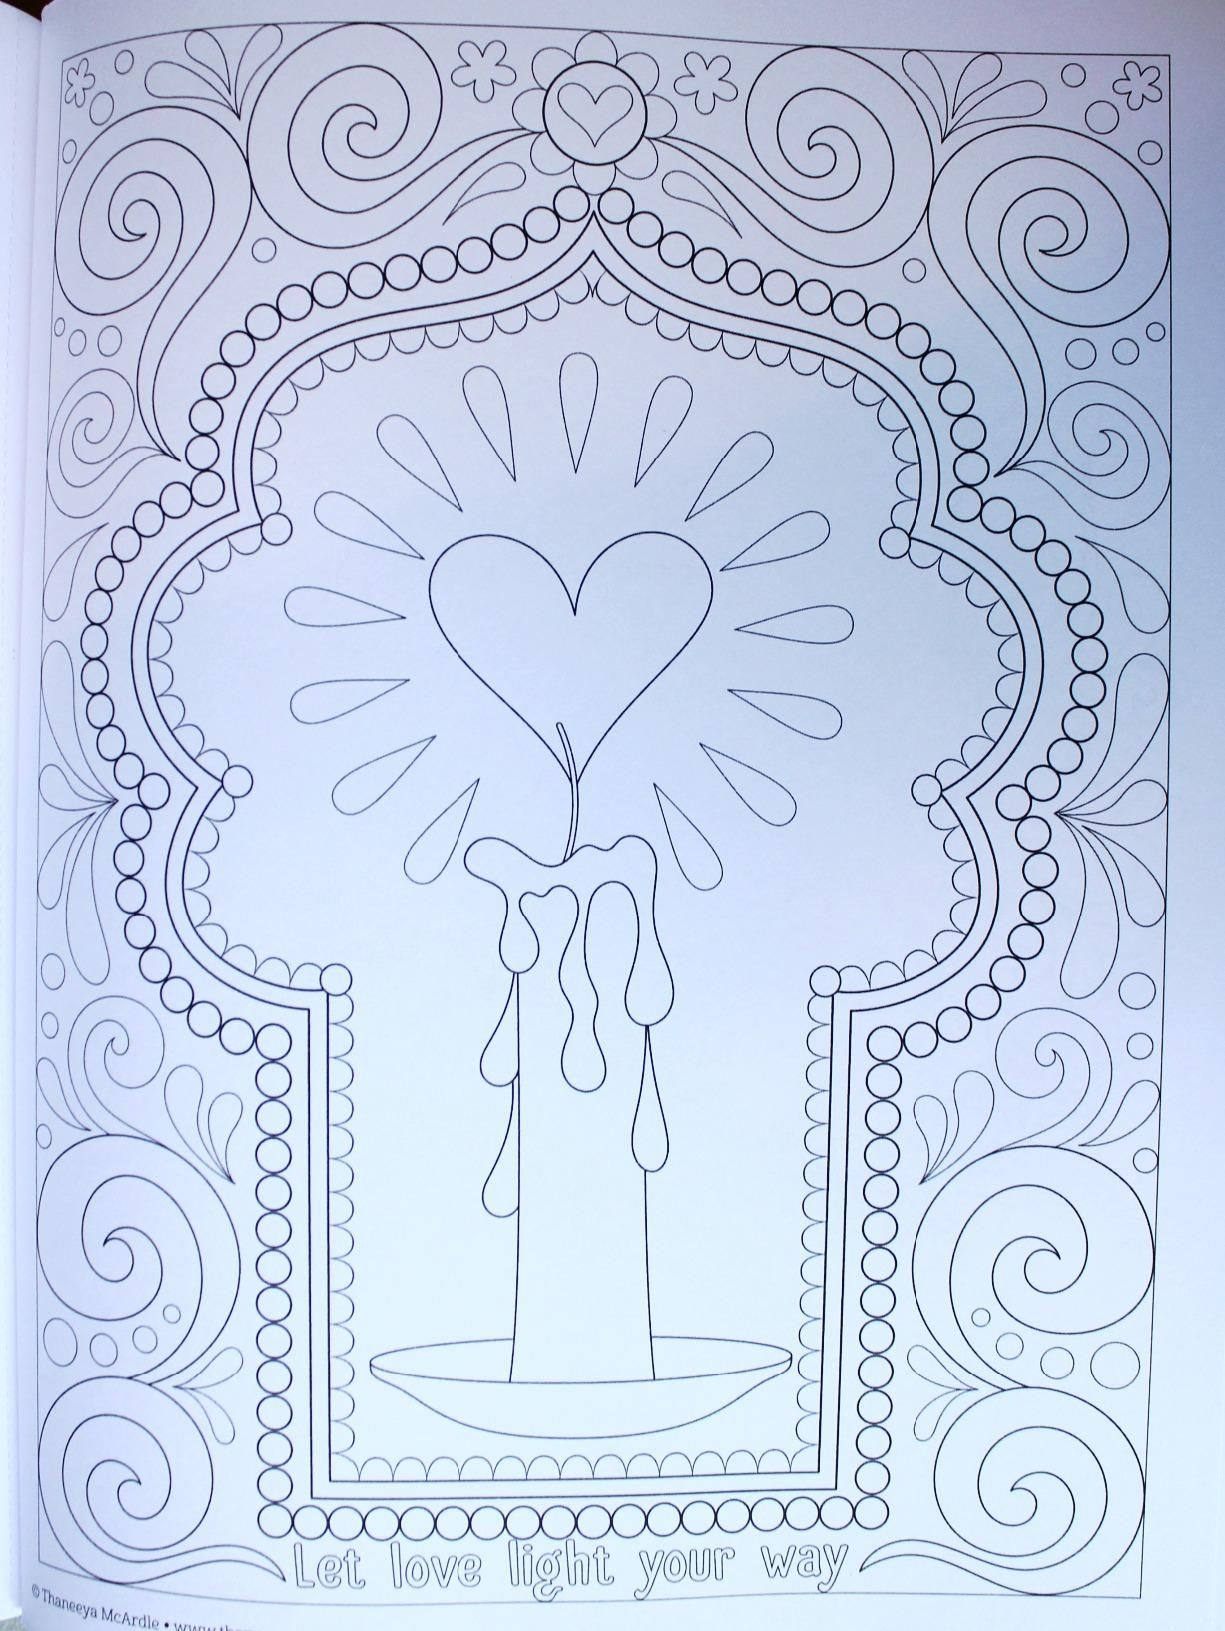 Follow Your Bliss Coloring Book Activity Thaneeya McArdle 9781574219968